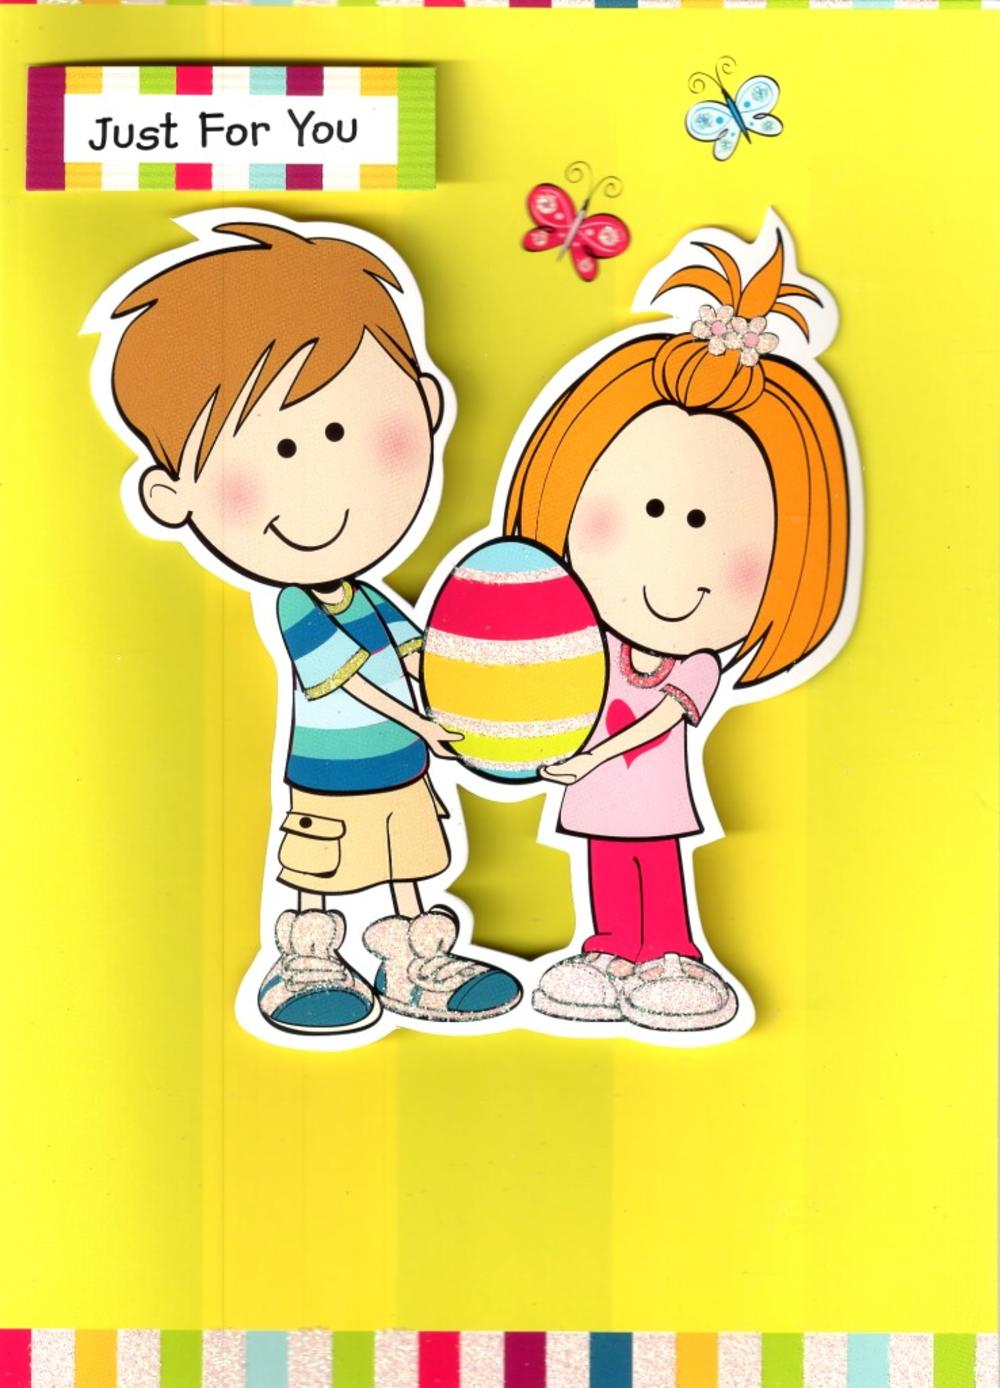 Just For You Easter Egg Card